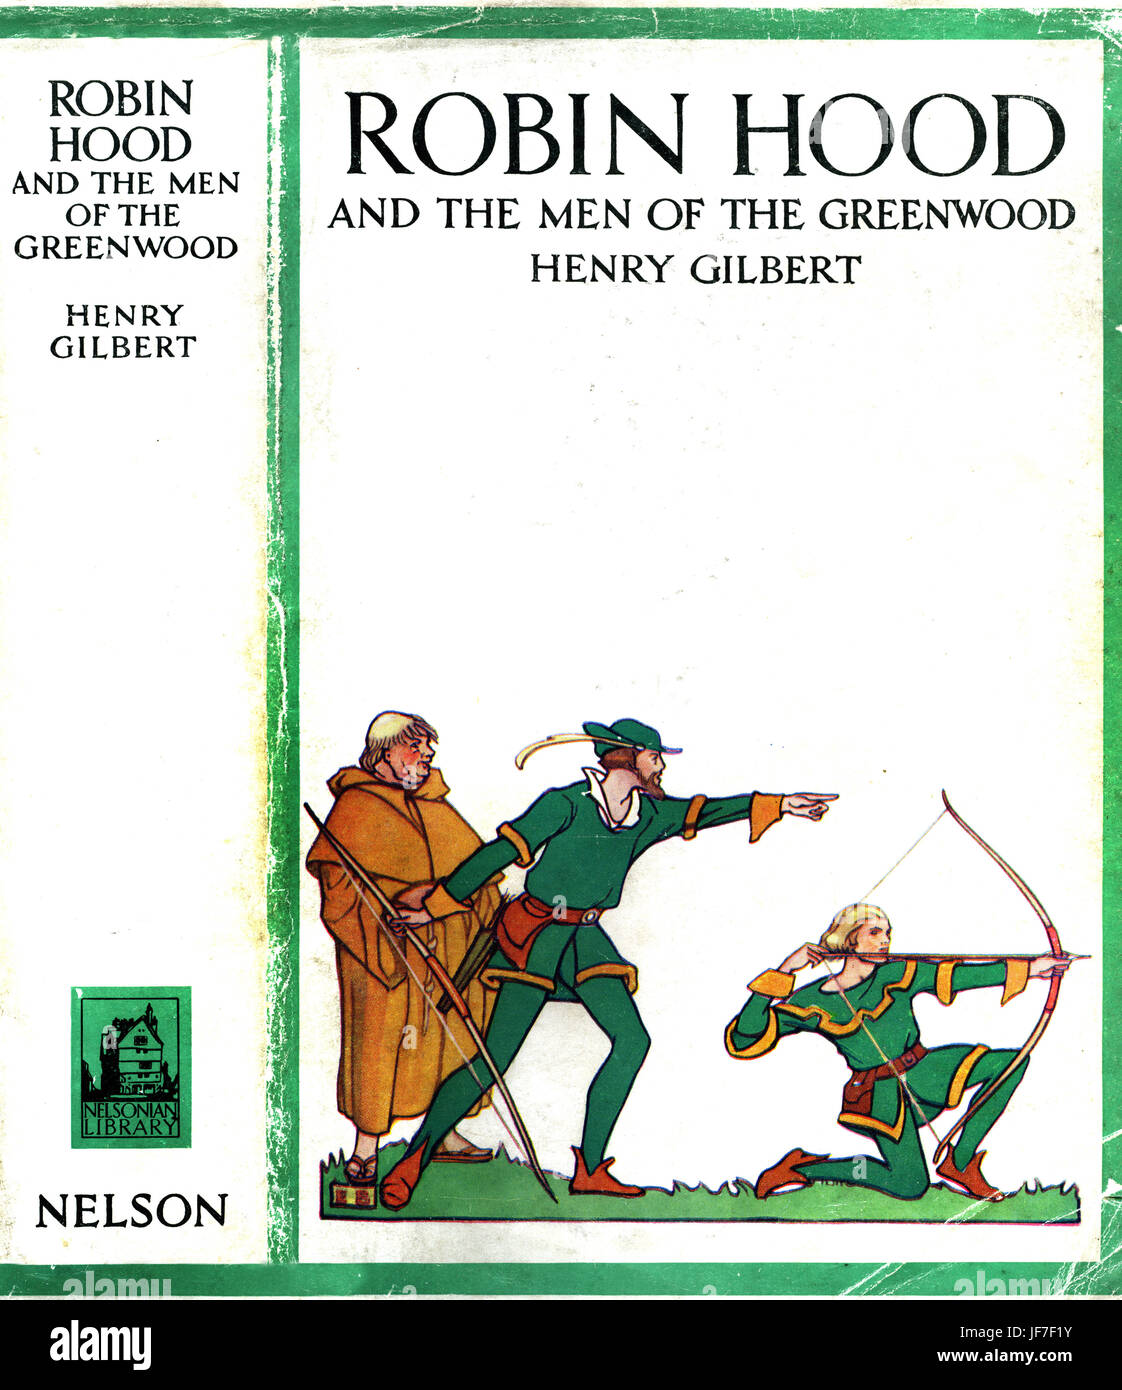 Robin Hood and the men of the Greenwood by Henry Gilbert. Dust jacket. Illustrated by Walter Crane. C.1912 - Stock Image